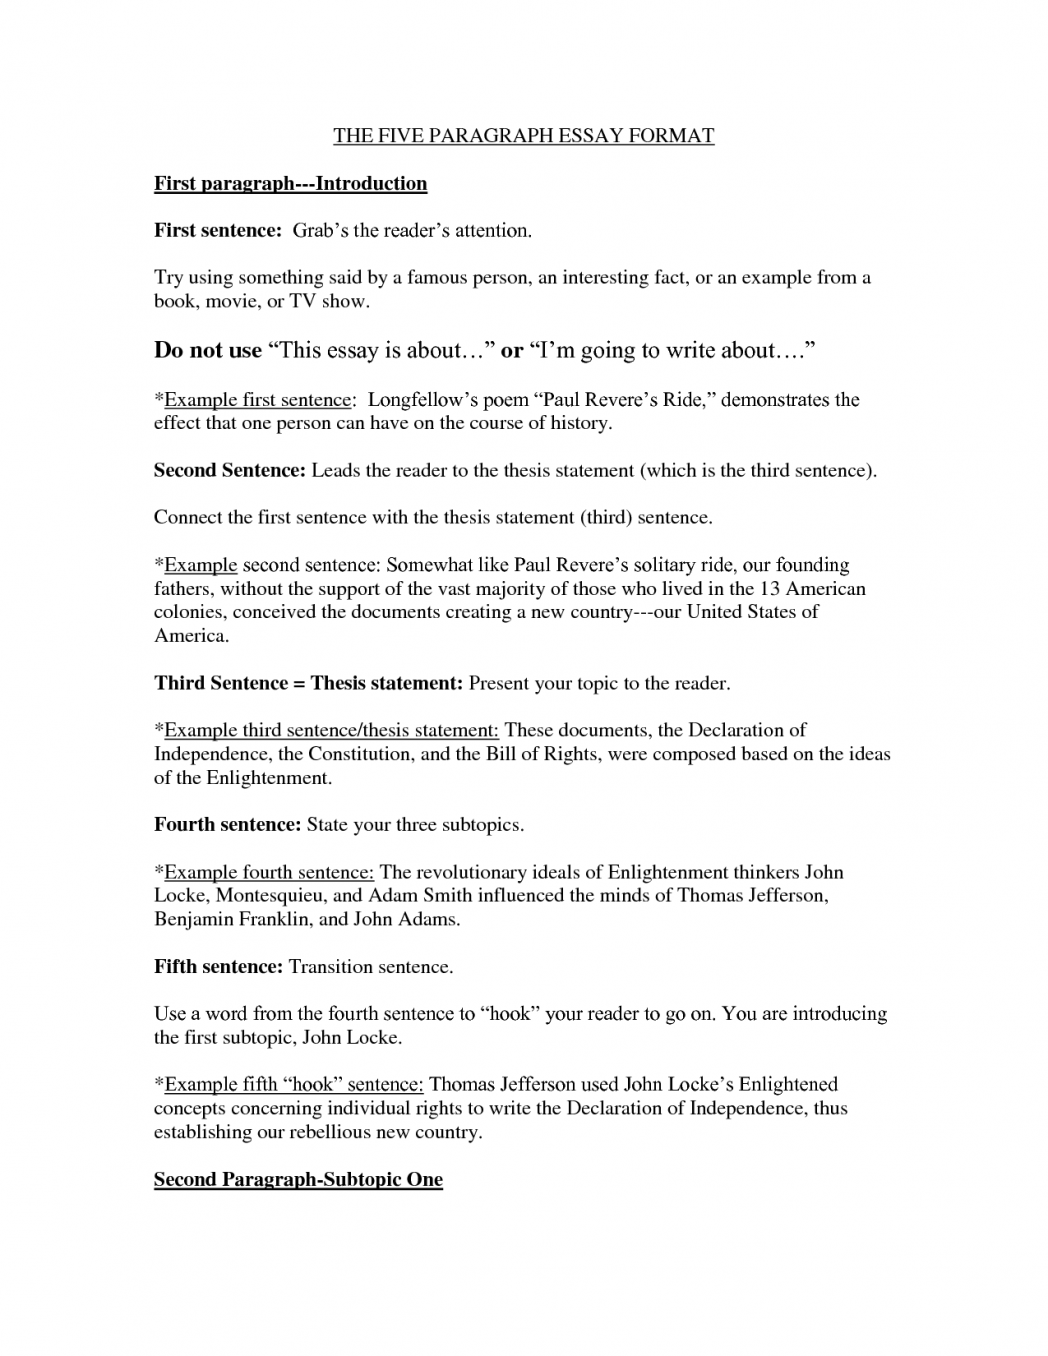 018 Good Hooks For Persuasive Essays Argumentive Sample What Is Hook Essay The Thesis Statement Should O3c Great On School Uniforms Writing 1048x1356 Example In Top A An About Crucible Odysseus Leadership Full